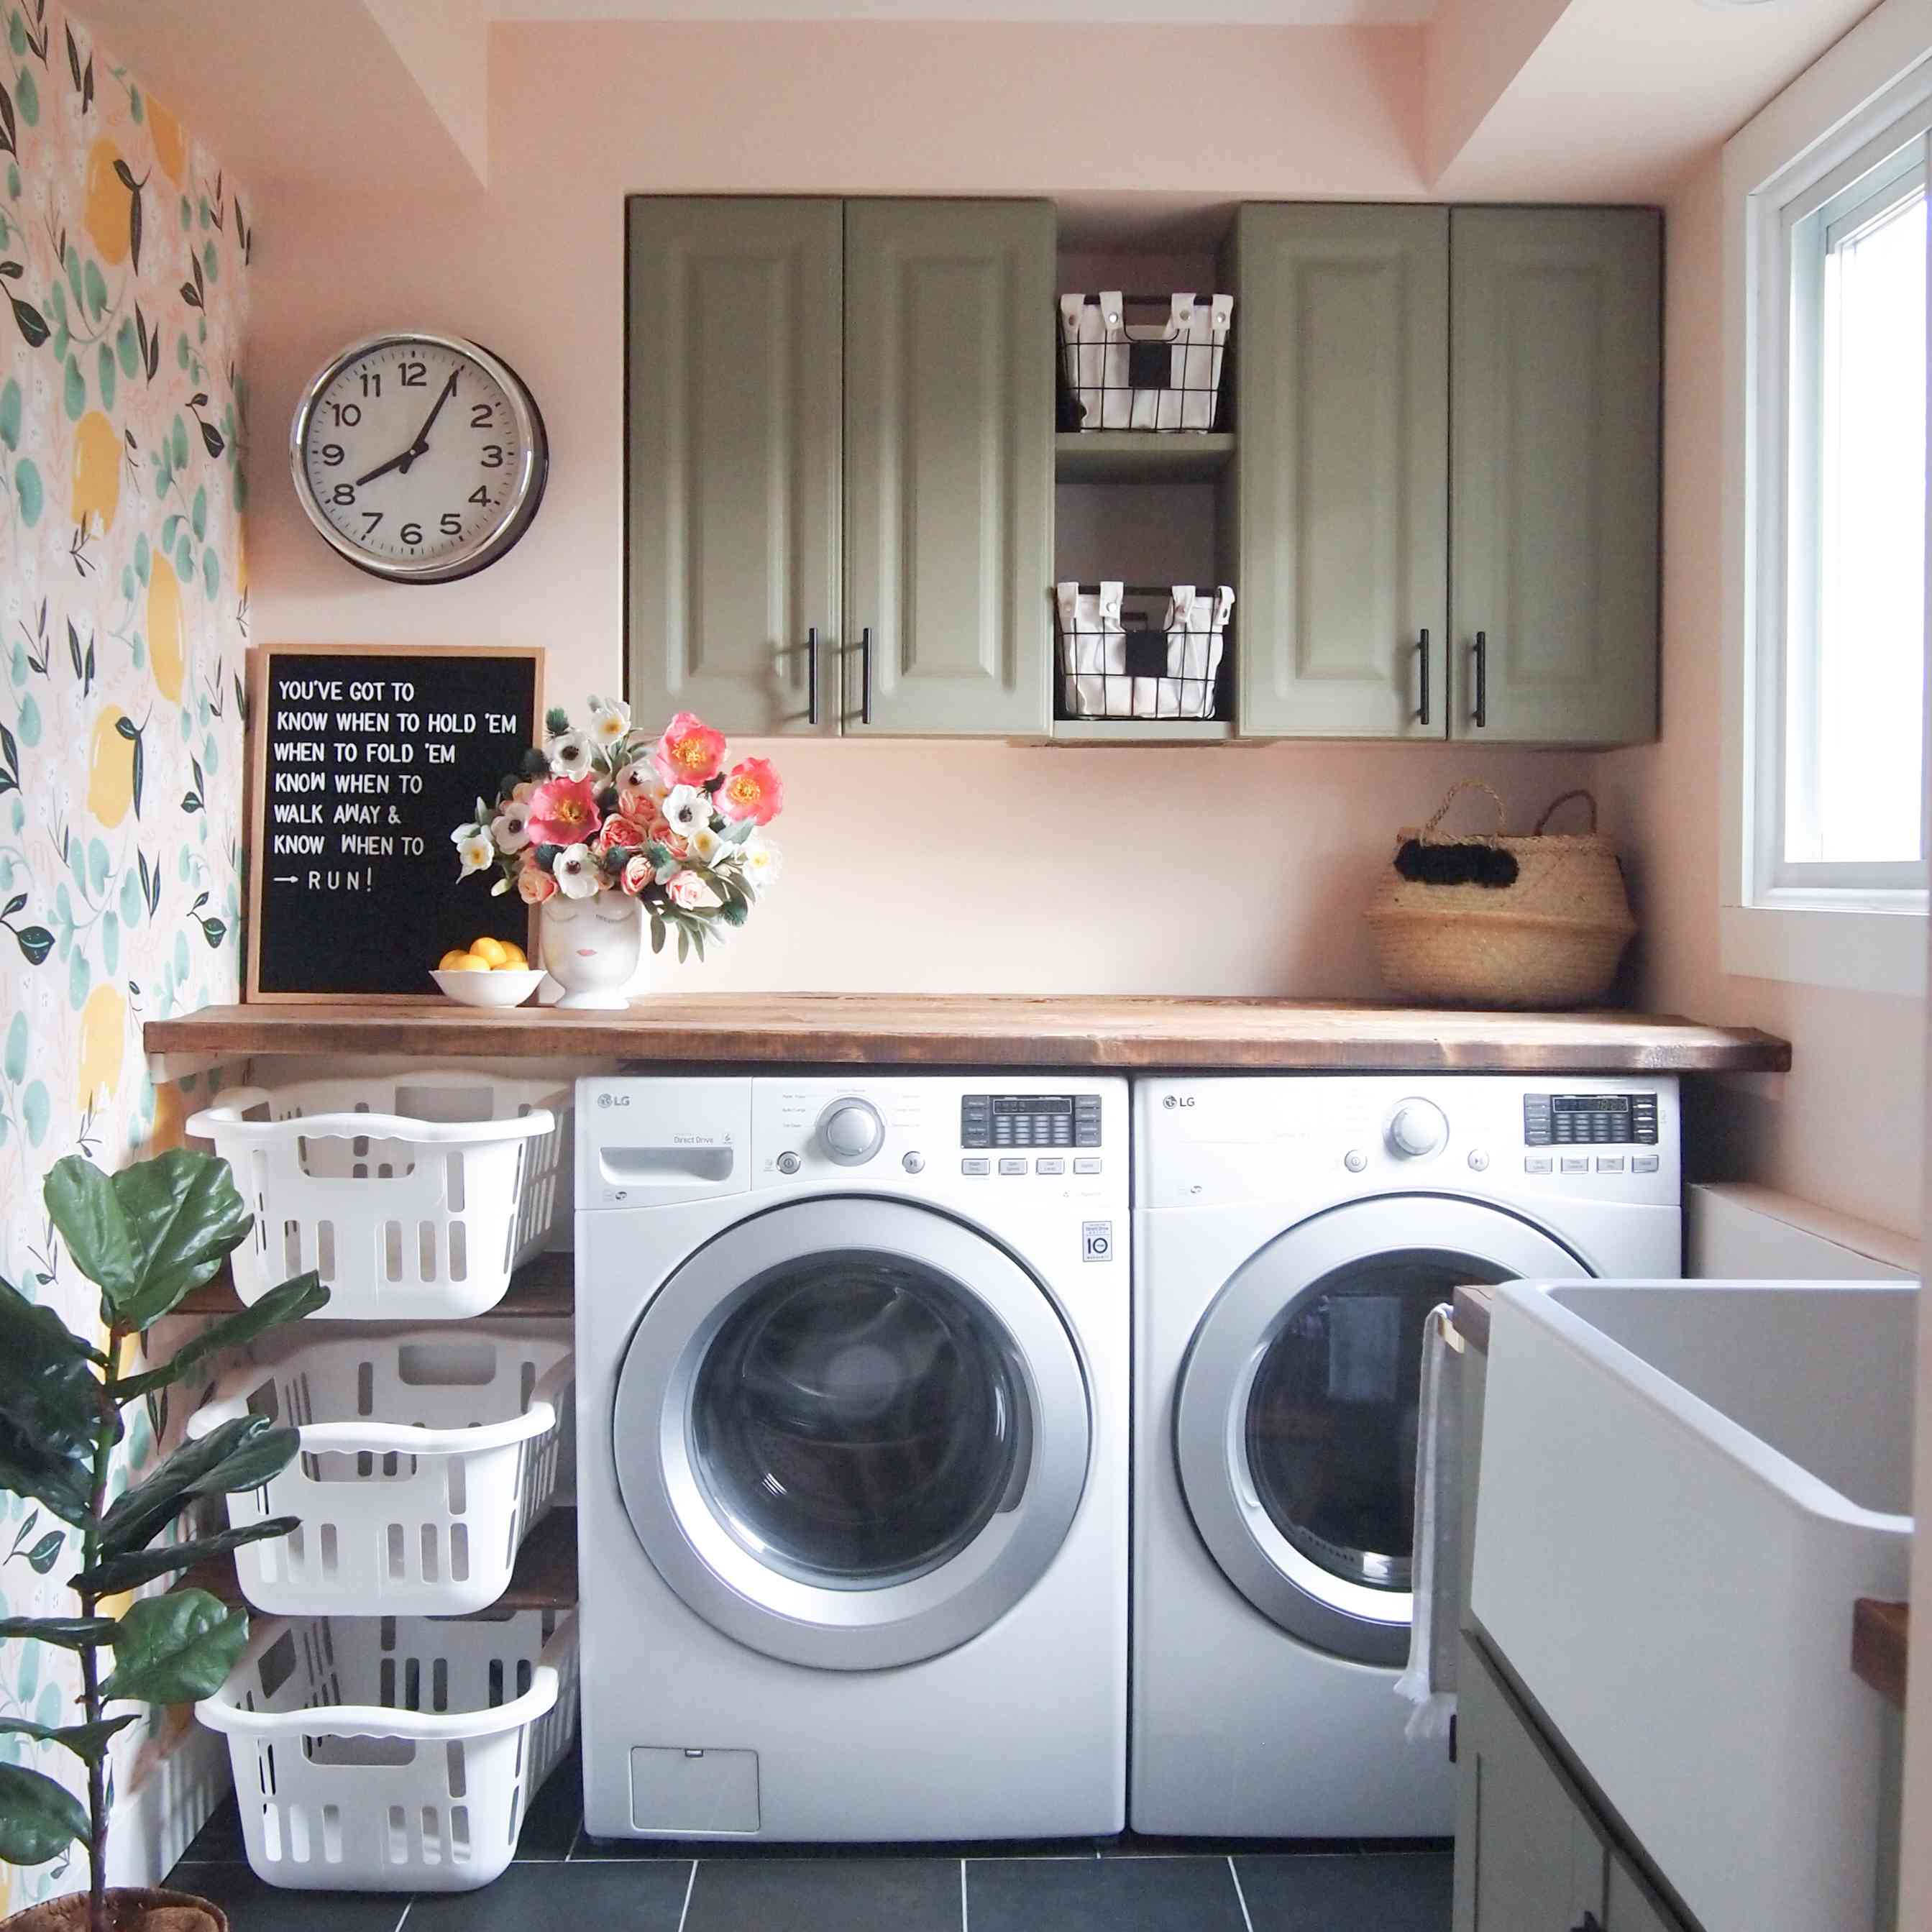 Laundry room after makeover.